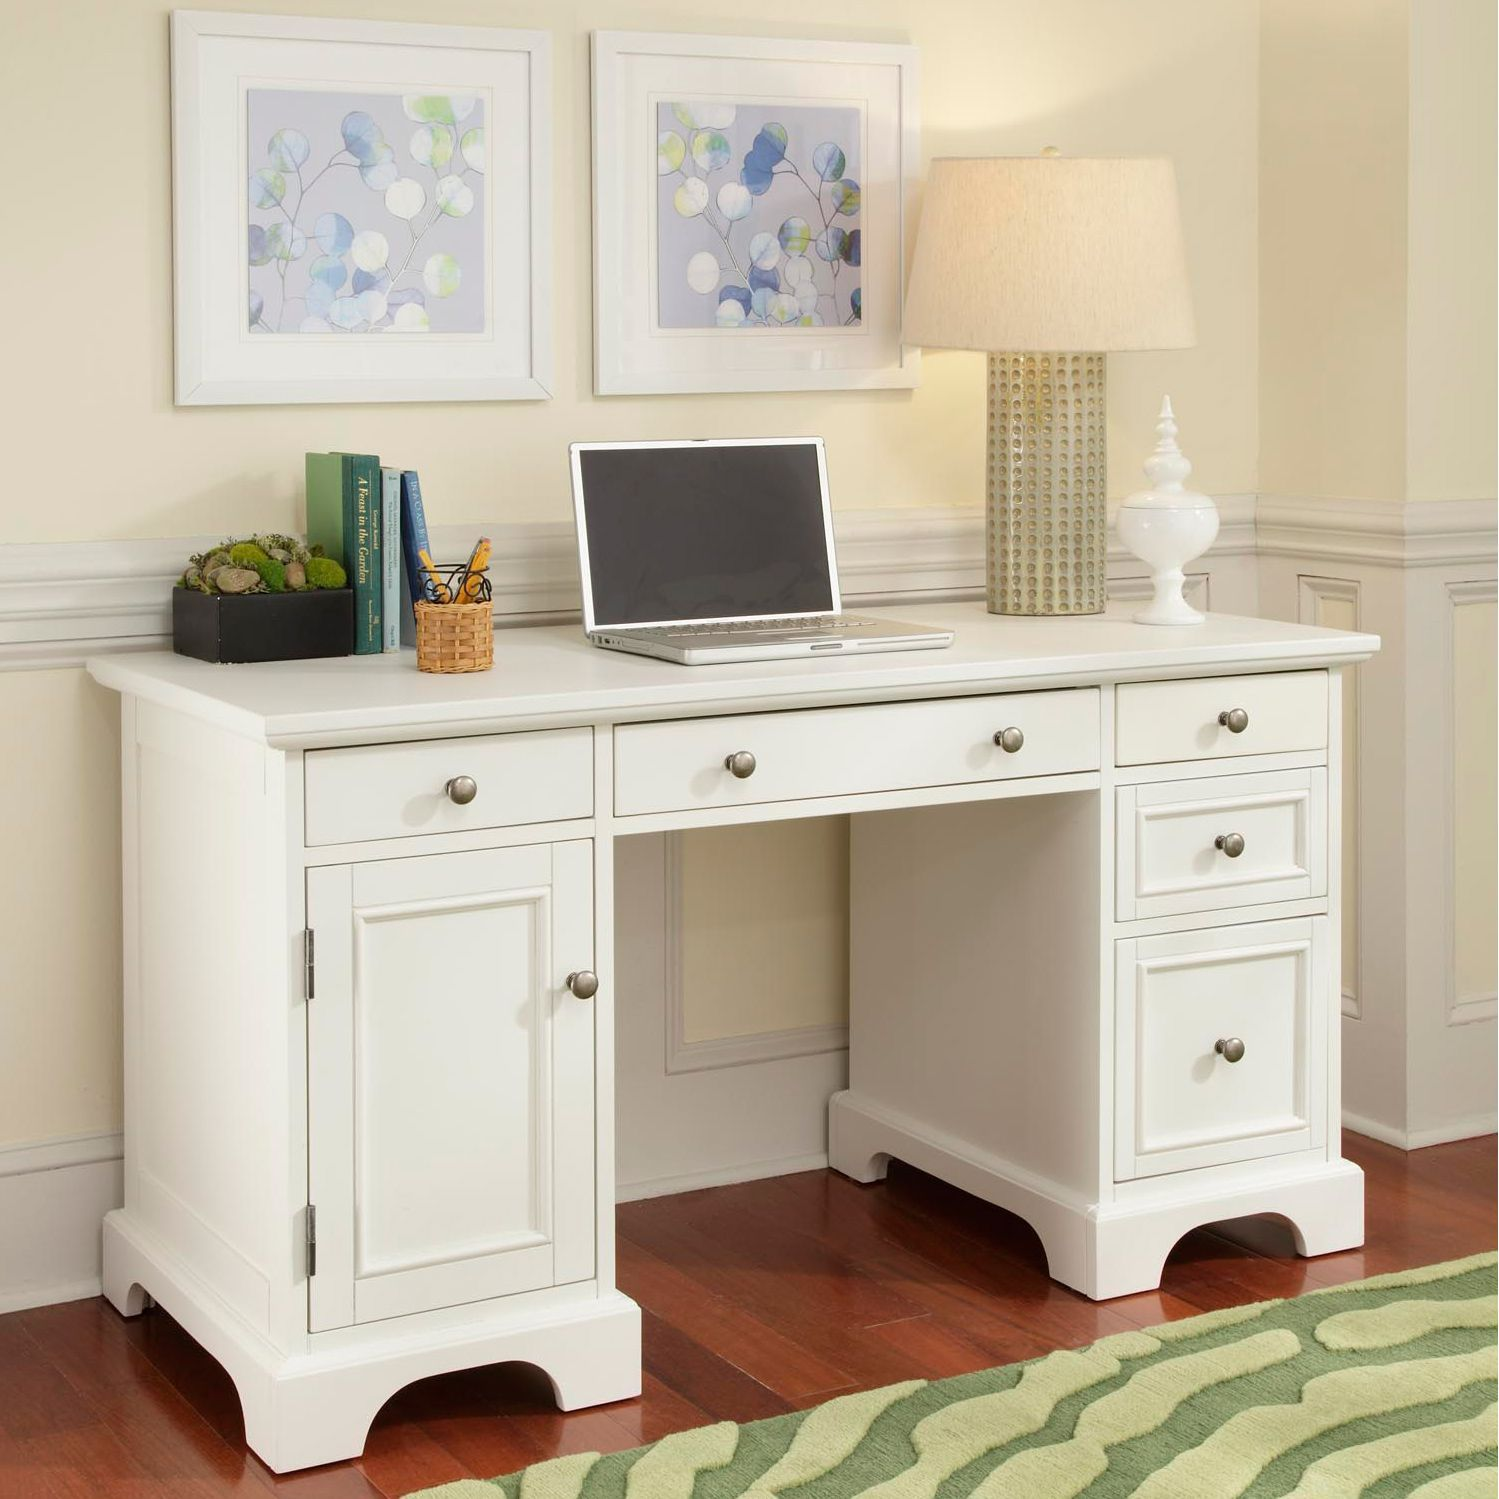 Fantastic furniture hallway table  A fantastic desk for your home office and ready to stand double duty